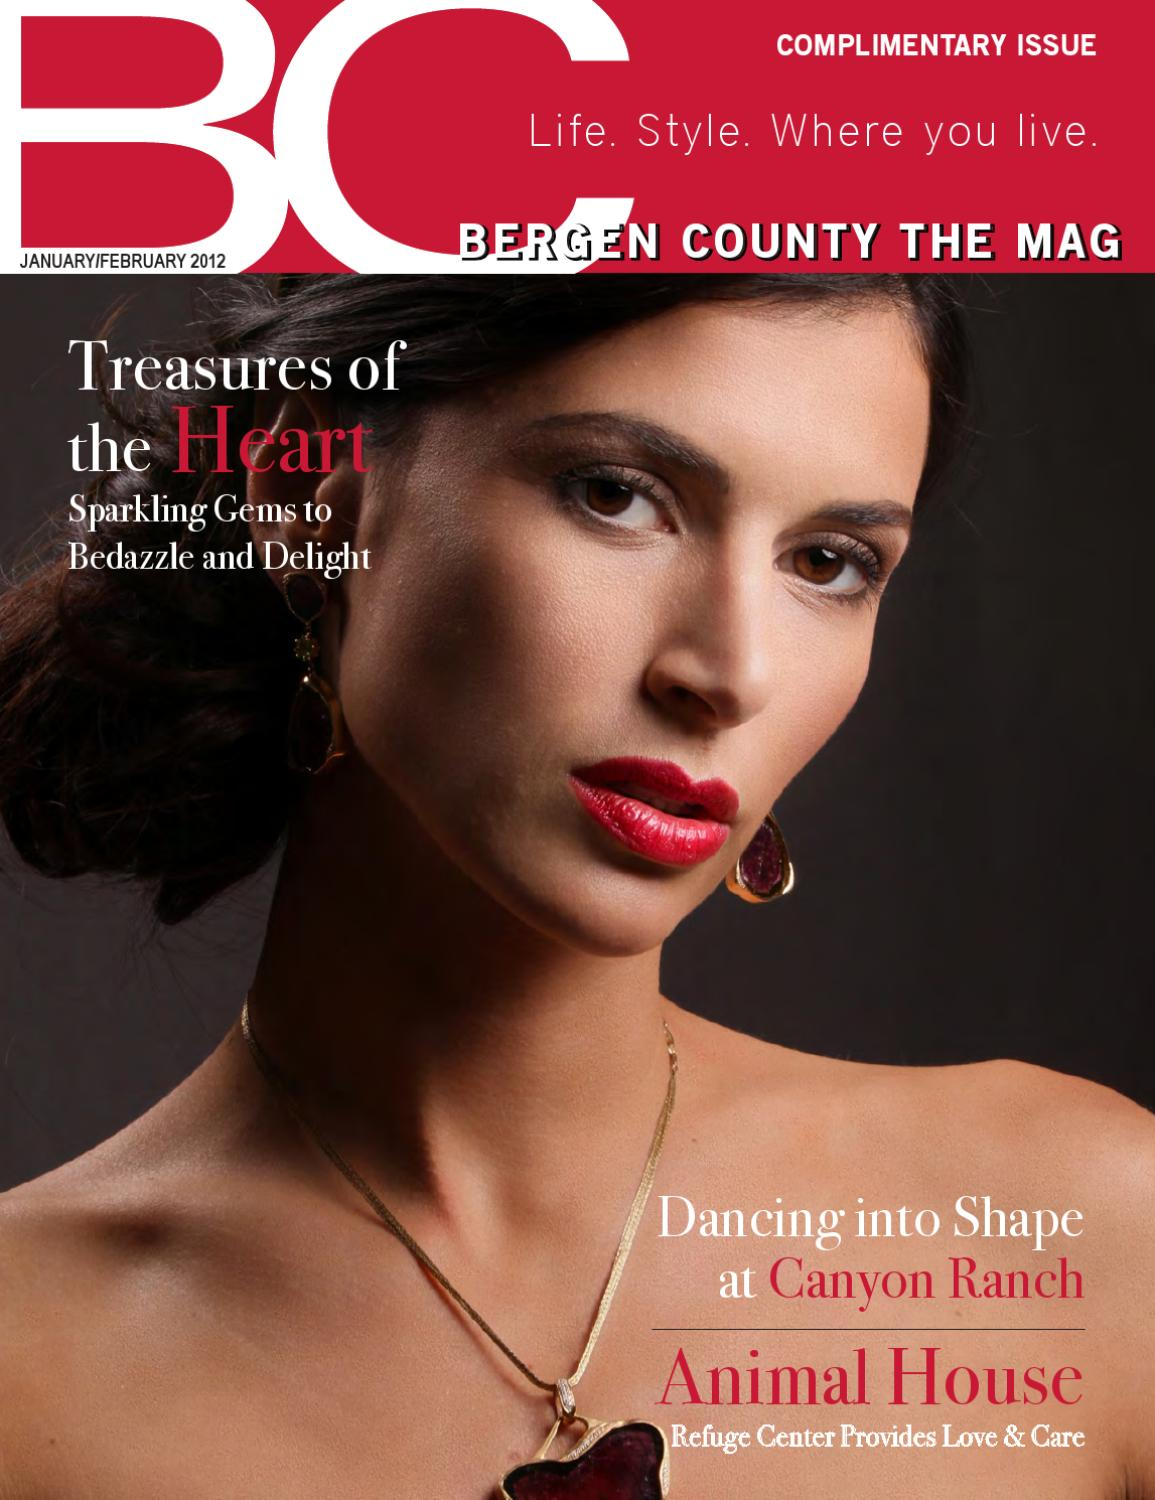 bc the mag late spring by bergen county the magazine issuu bc the mag jan feb 2012